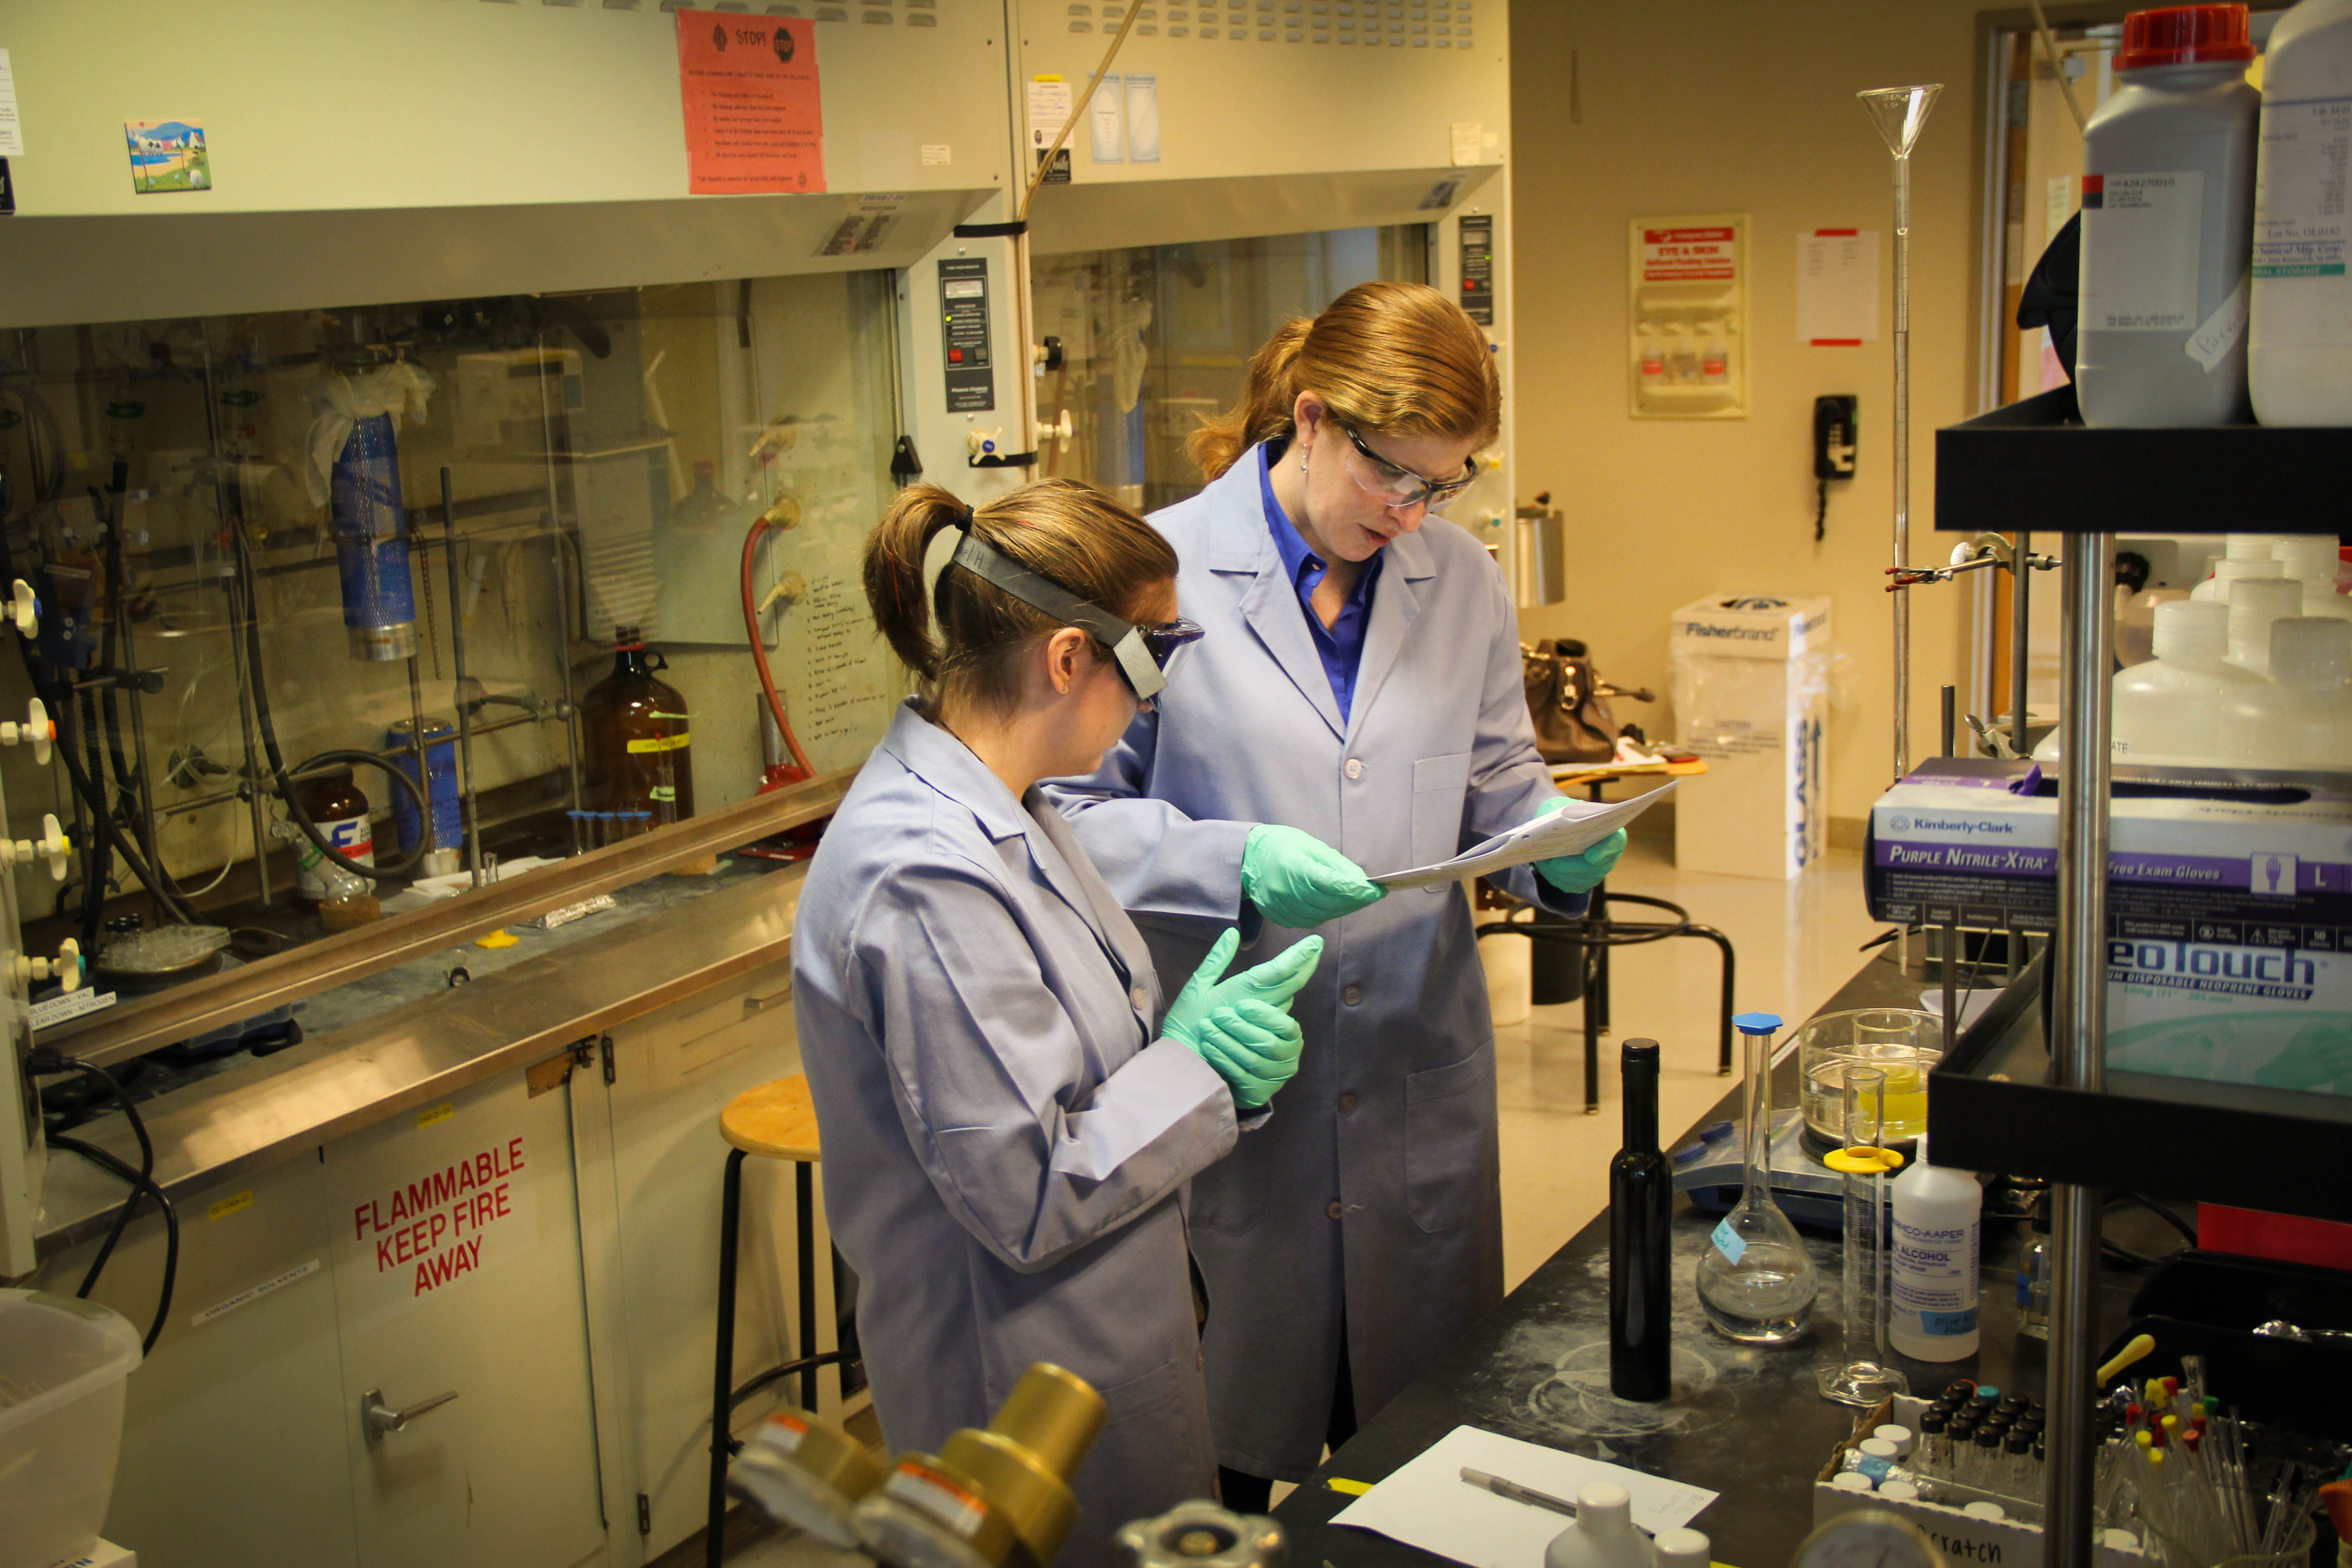 two people in lab coats and goggles looking at a clipboard